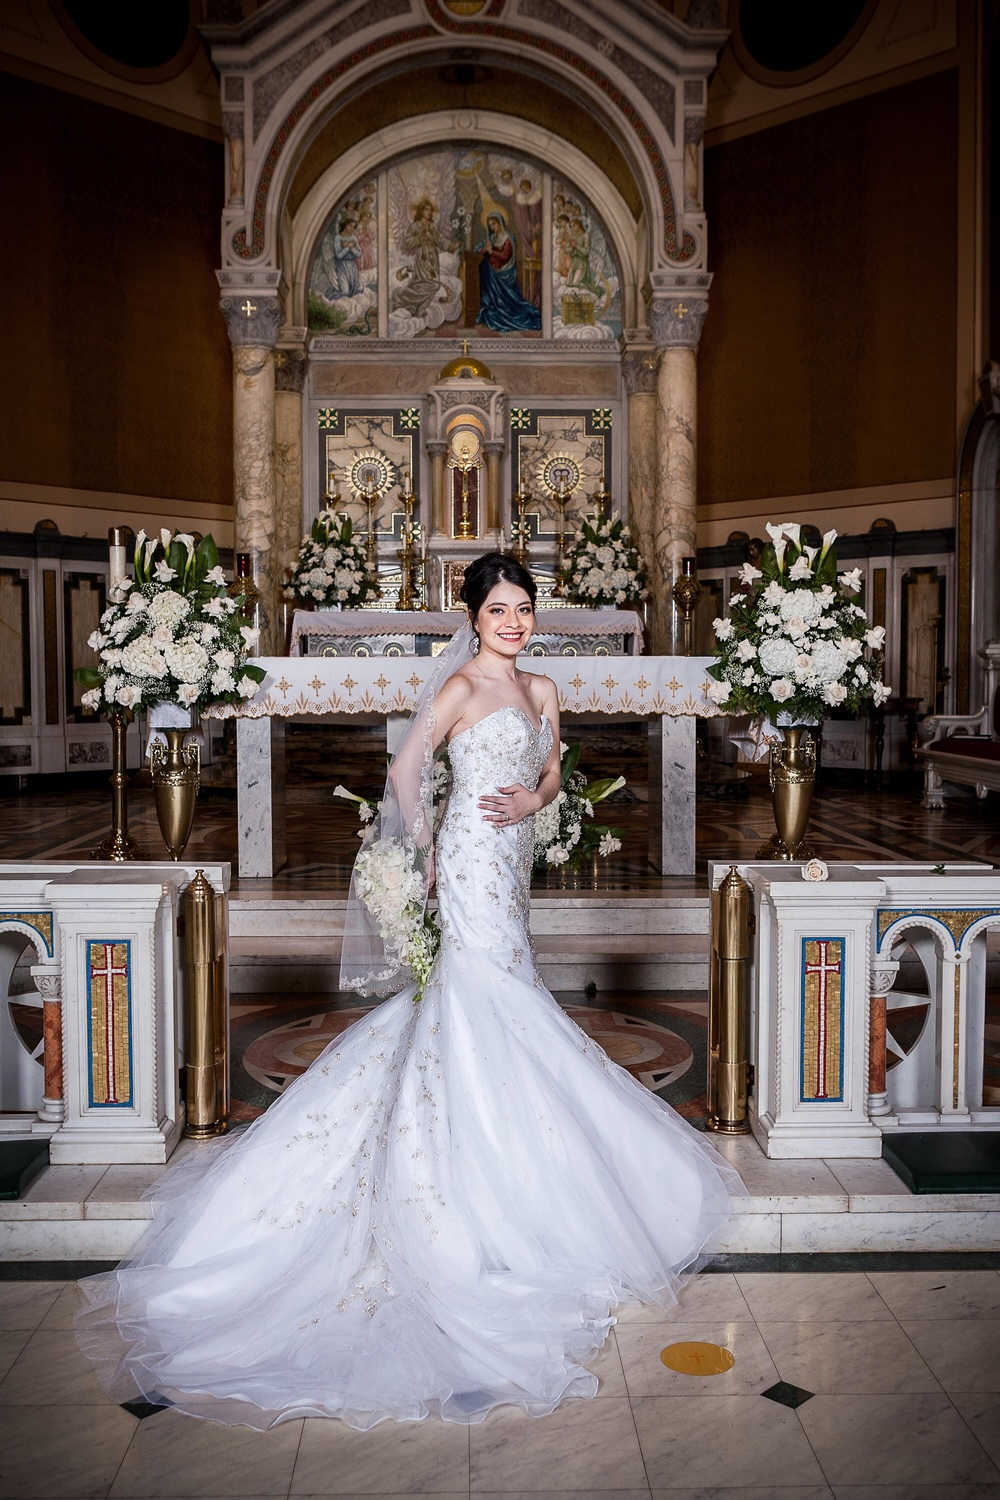 Wedding dress, bride, flowers, Catholic Church, altar, wedding, New Albany, Indiana